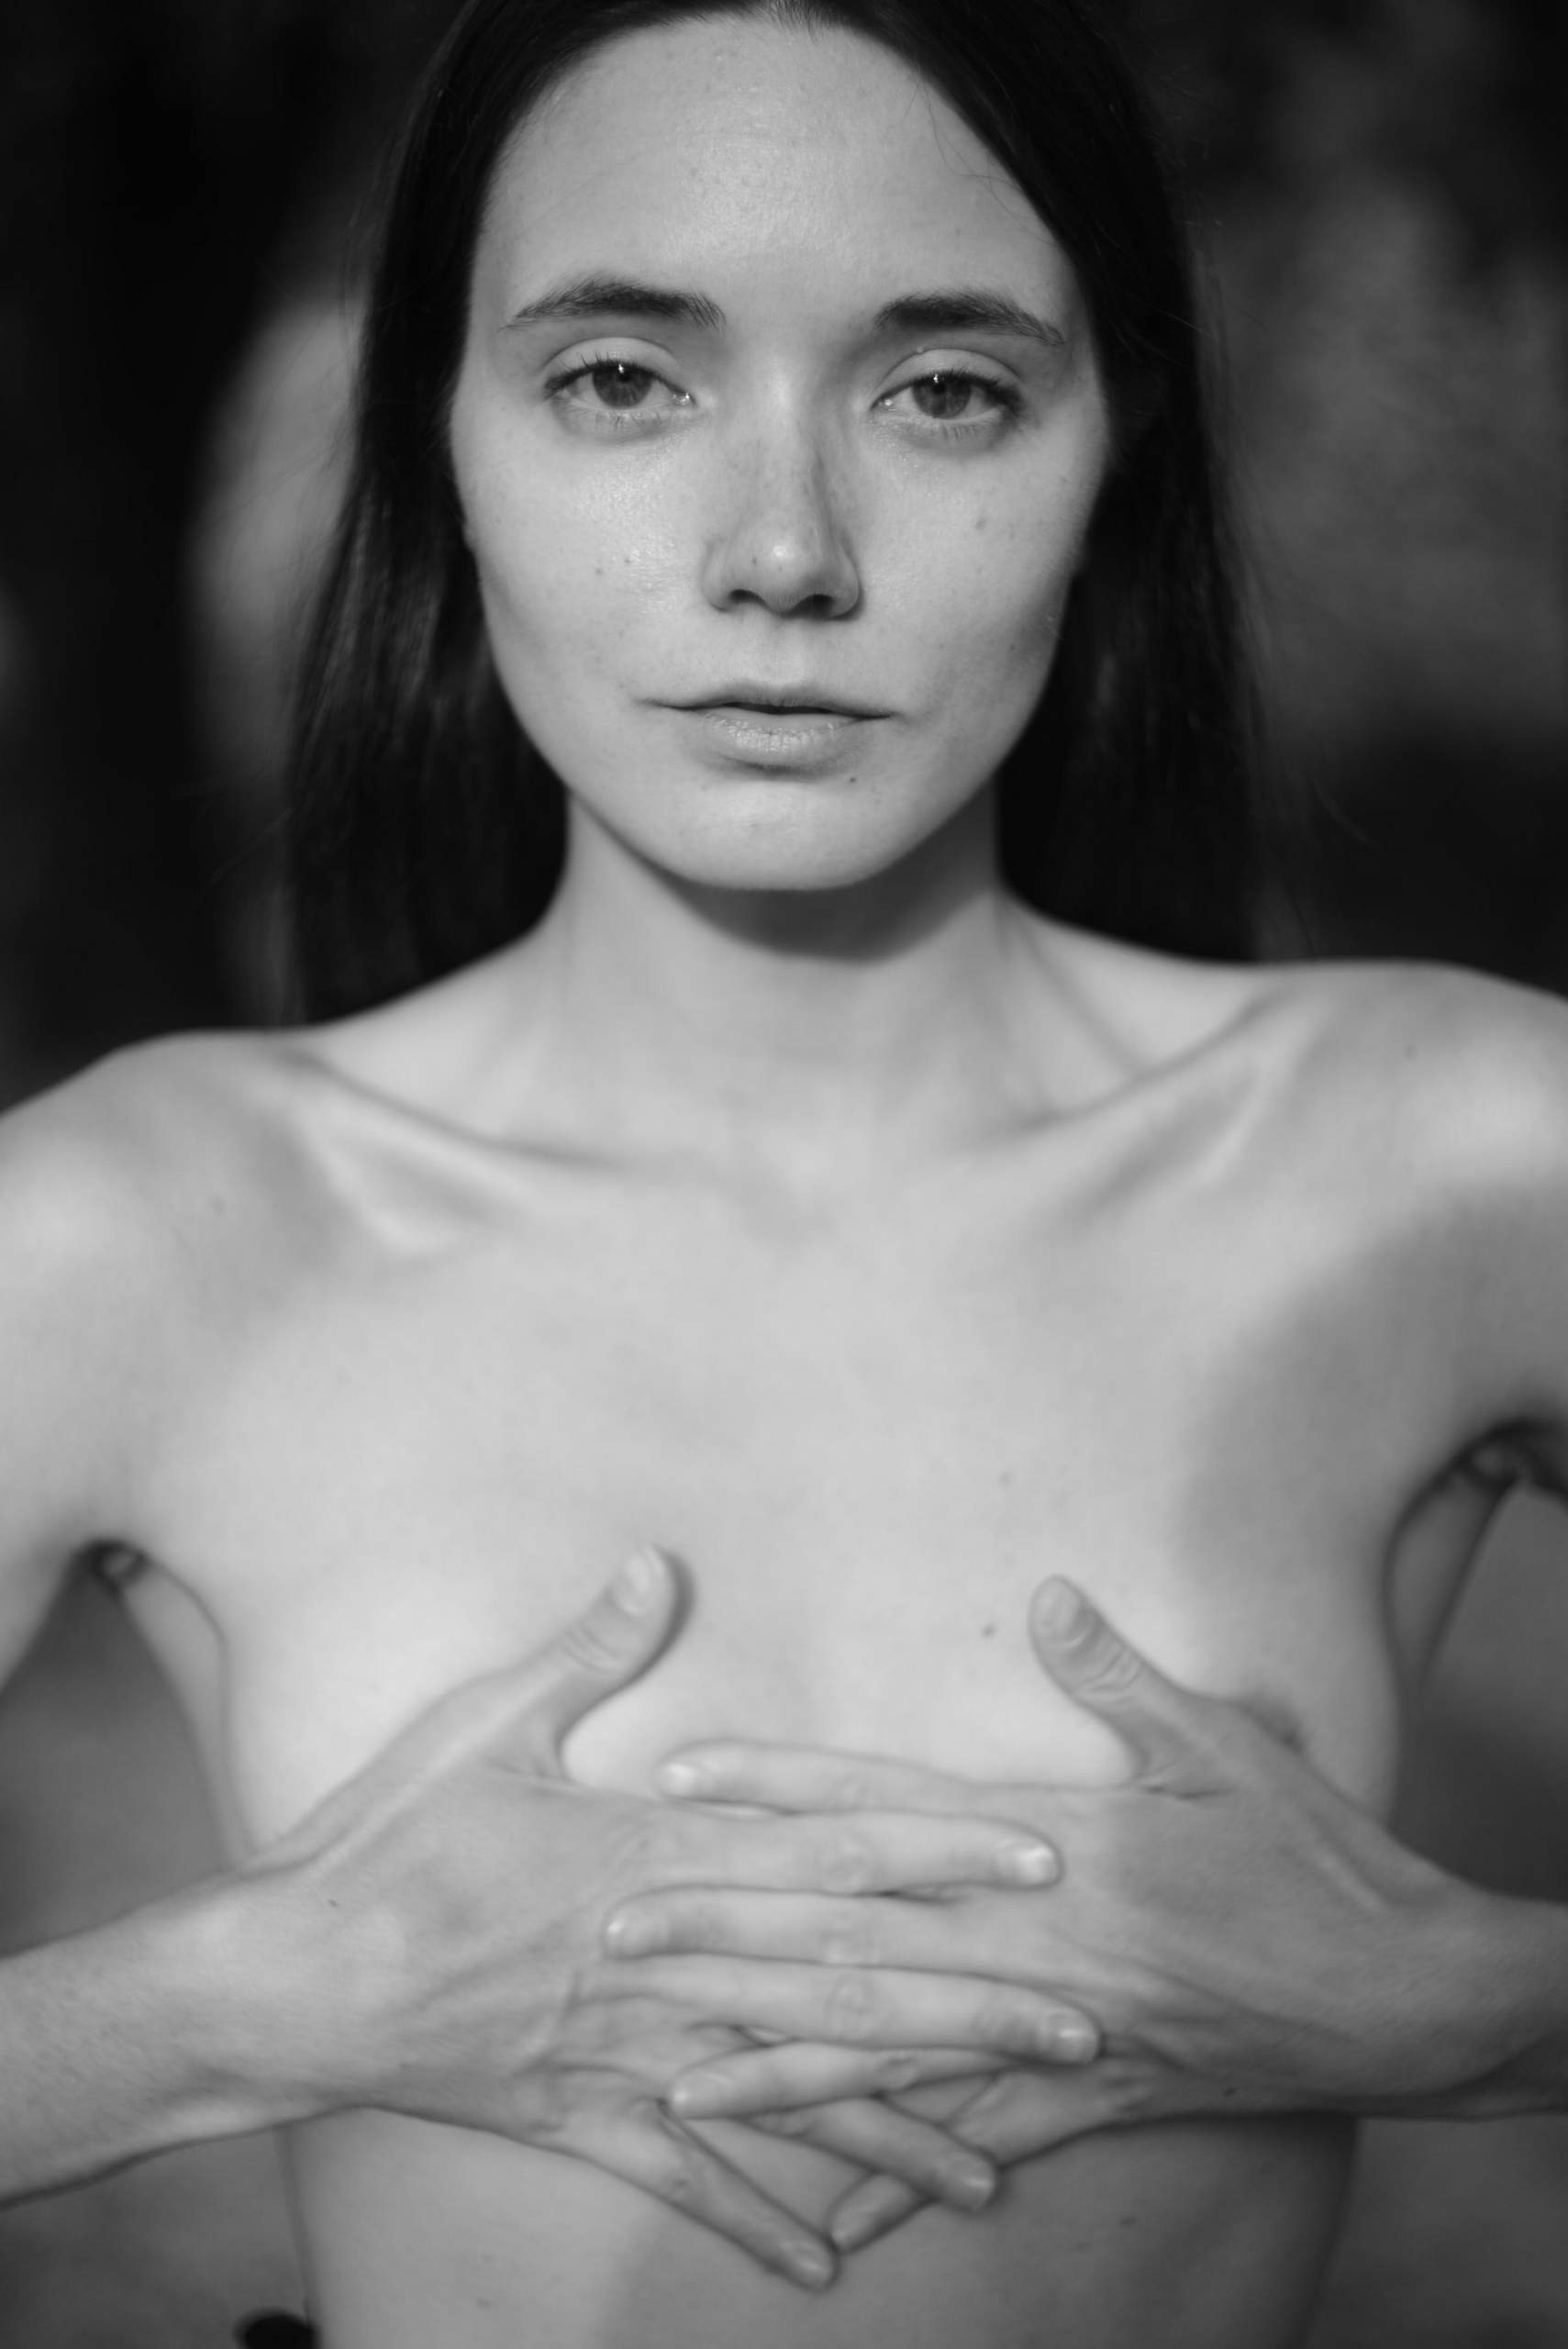 Nude art story in black and white